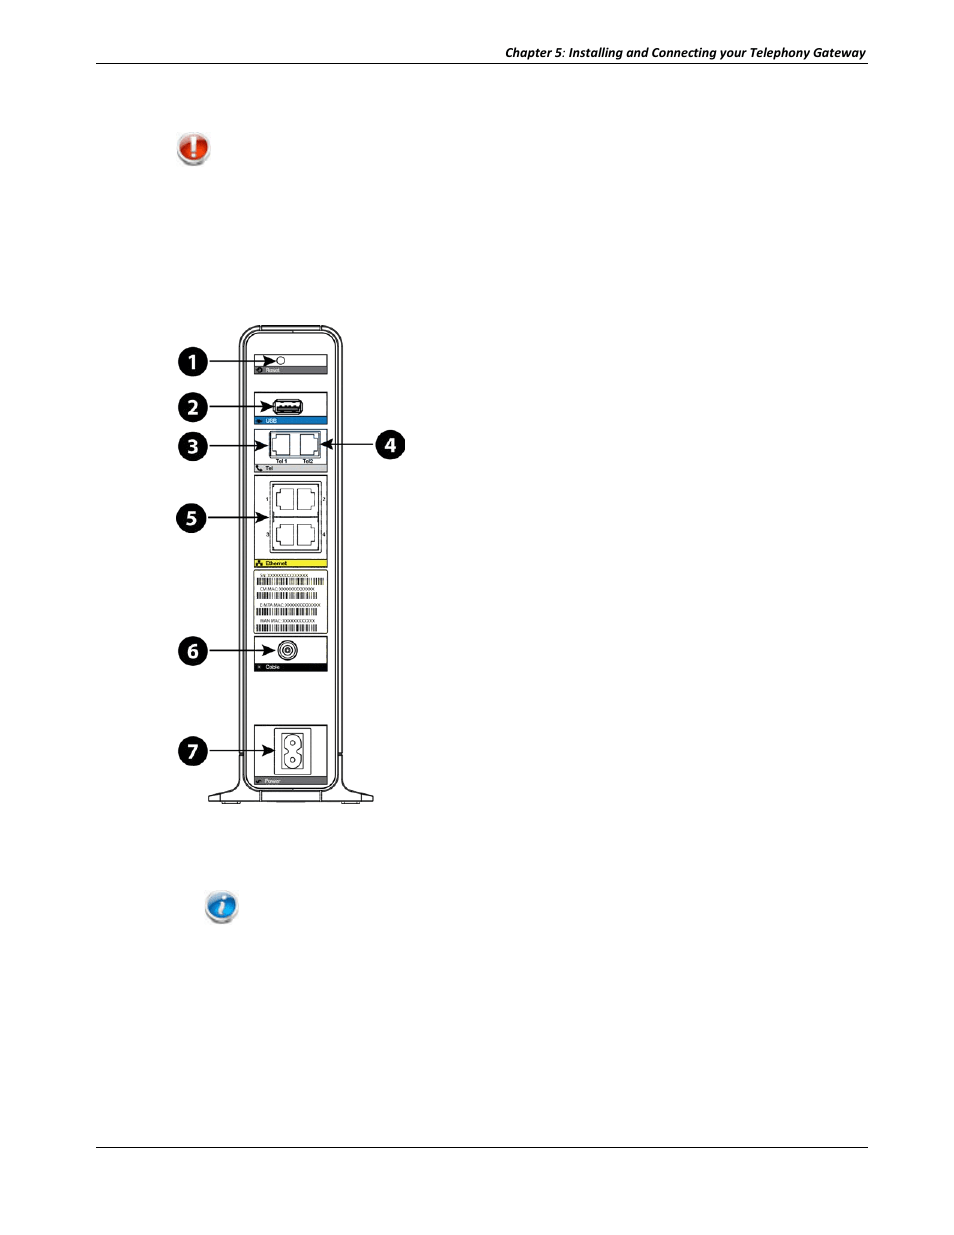 medium resolution of connecting the telephony gateway arris tg2472g na user guide user manual page 25 44